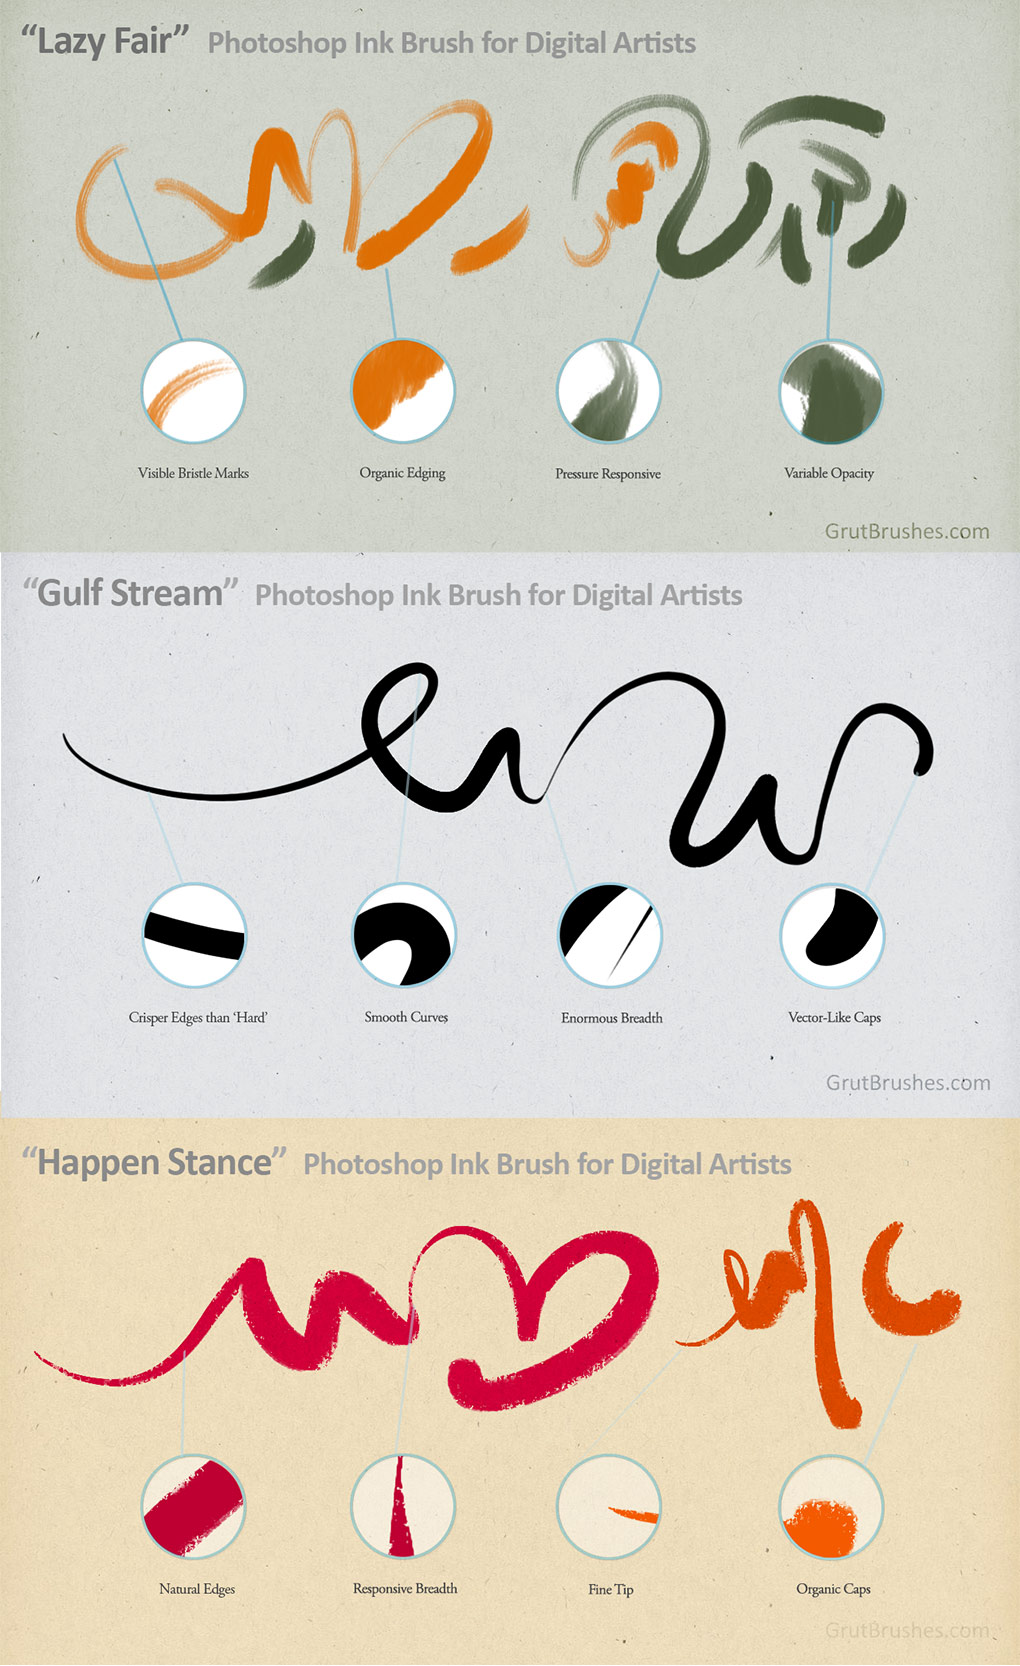 3 of the Photoshop Ink Brushes included in the Art Brushes Complete Set